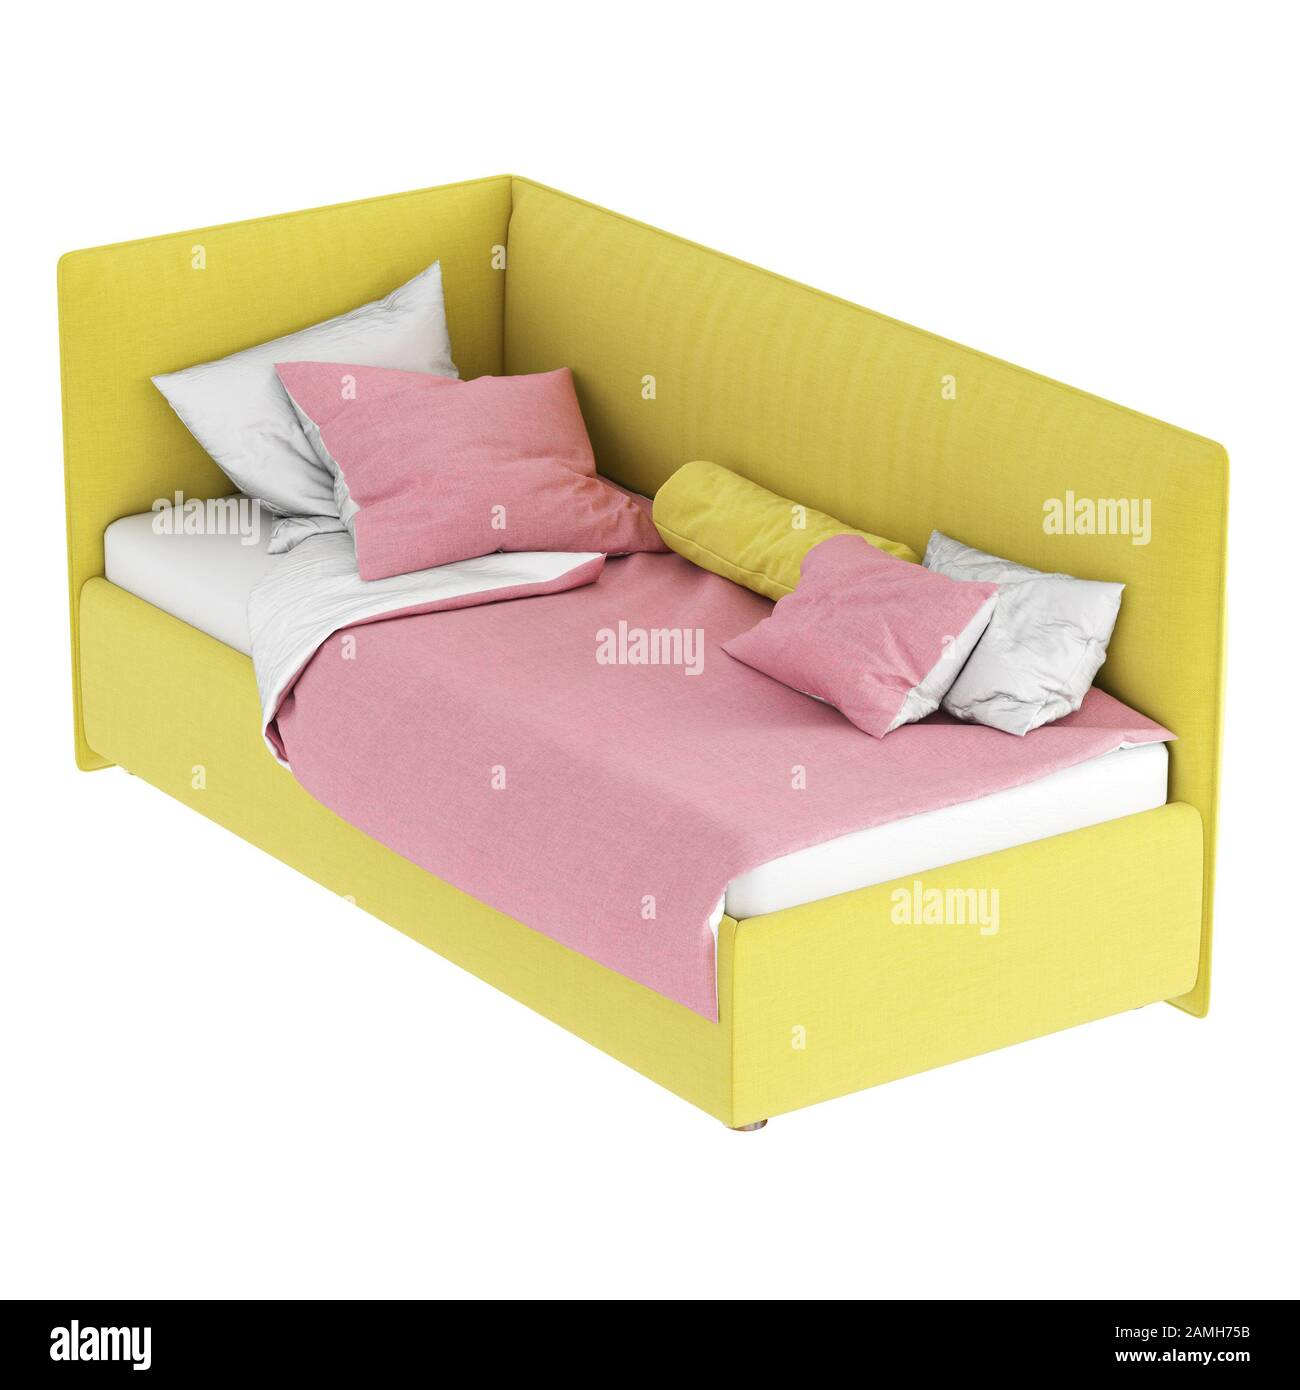 Children\'s bed with soft fabric yellow upholstery and white ...